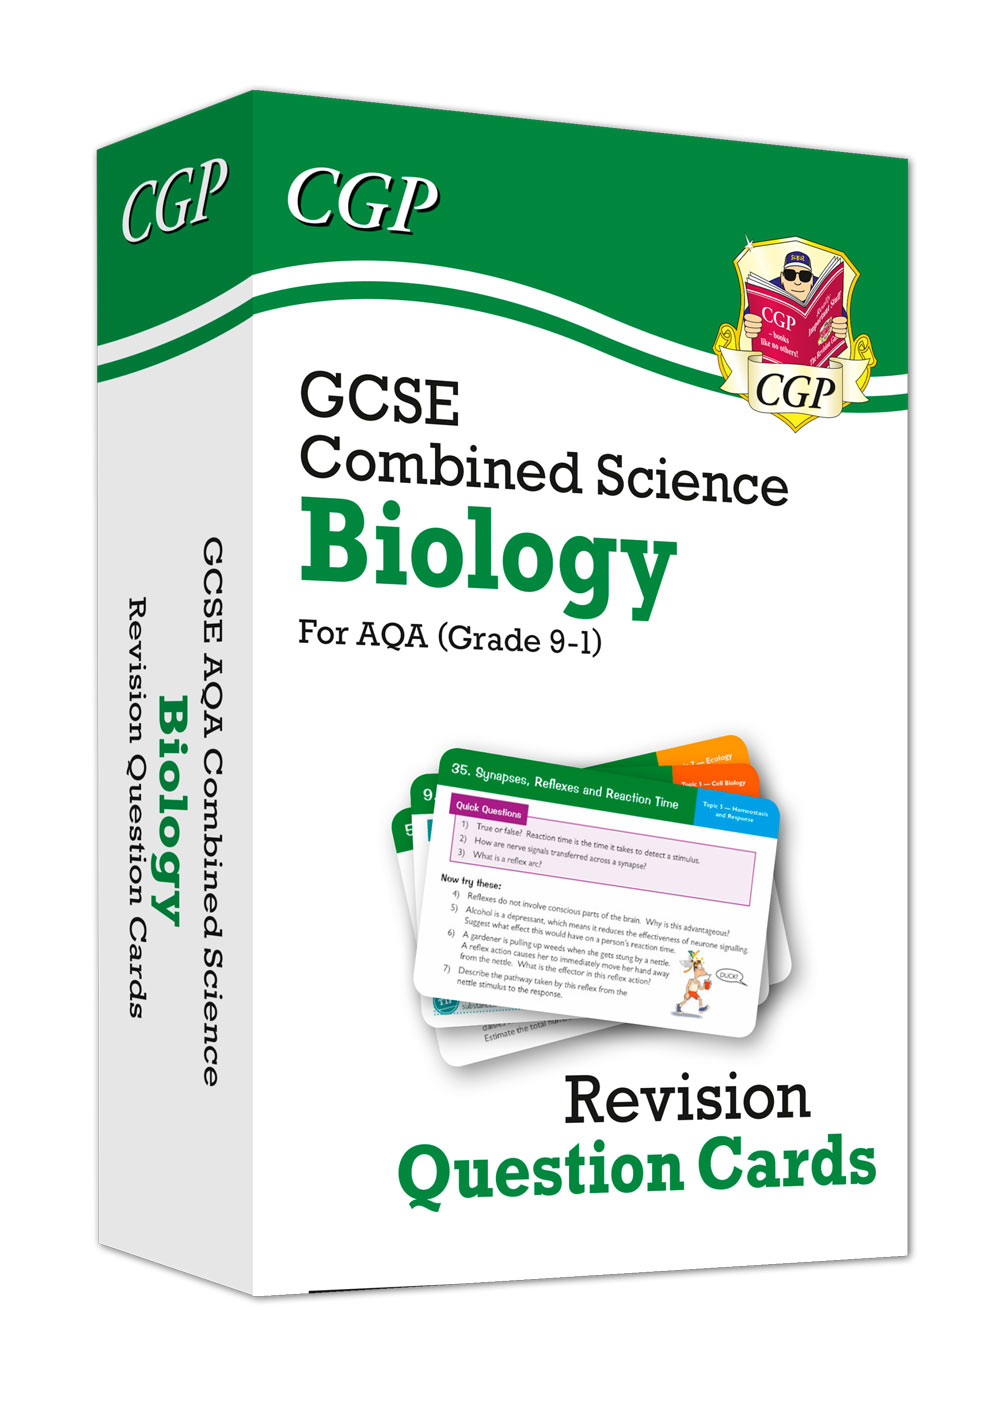 SCBAF41 - 9-1 GCSE Combined Science: Biology AQA Revision Question Cards